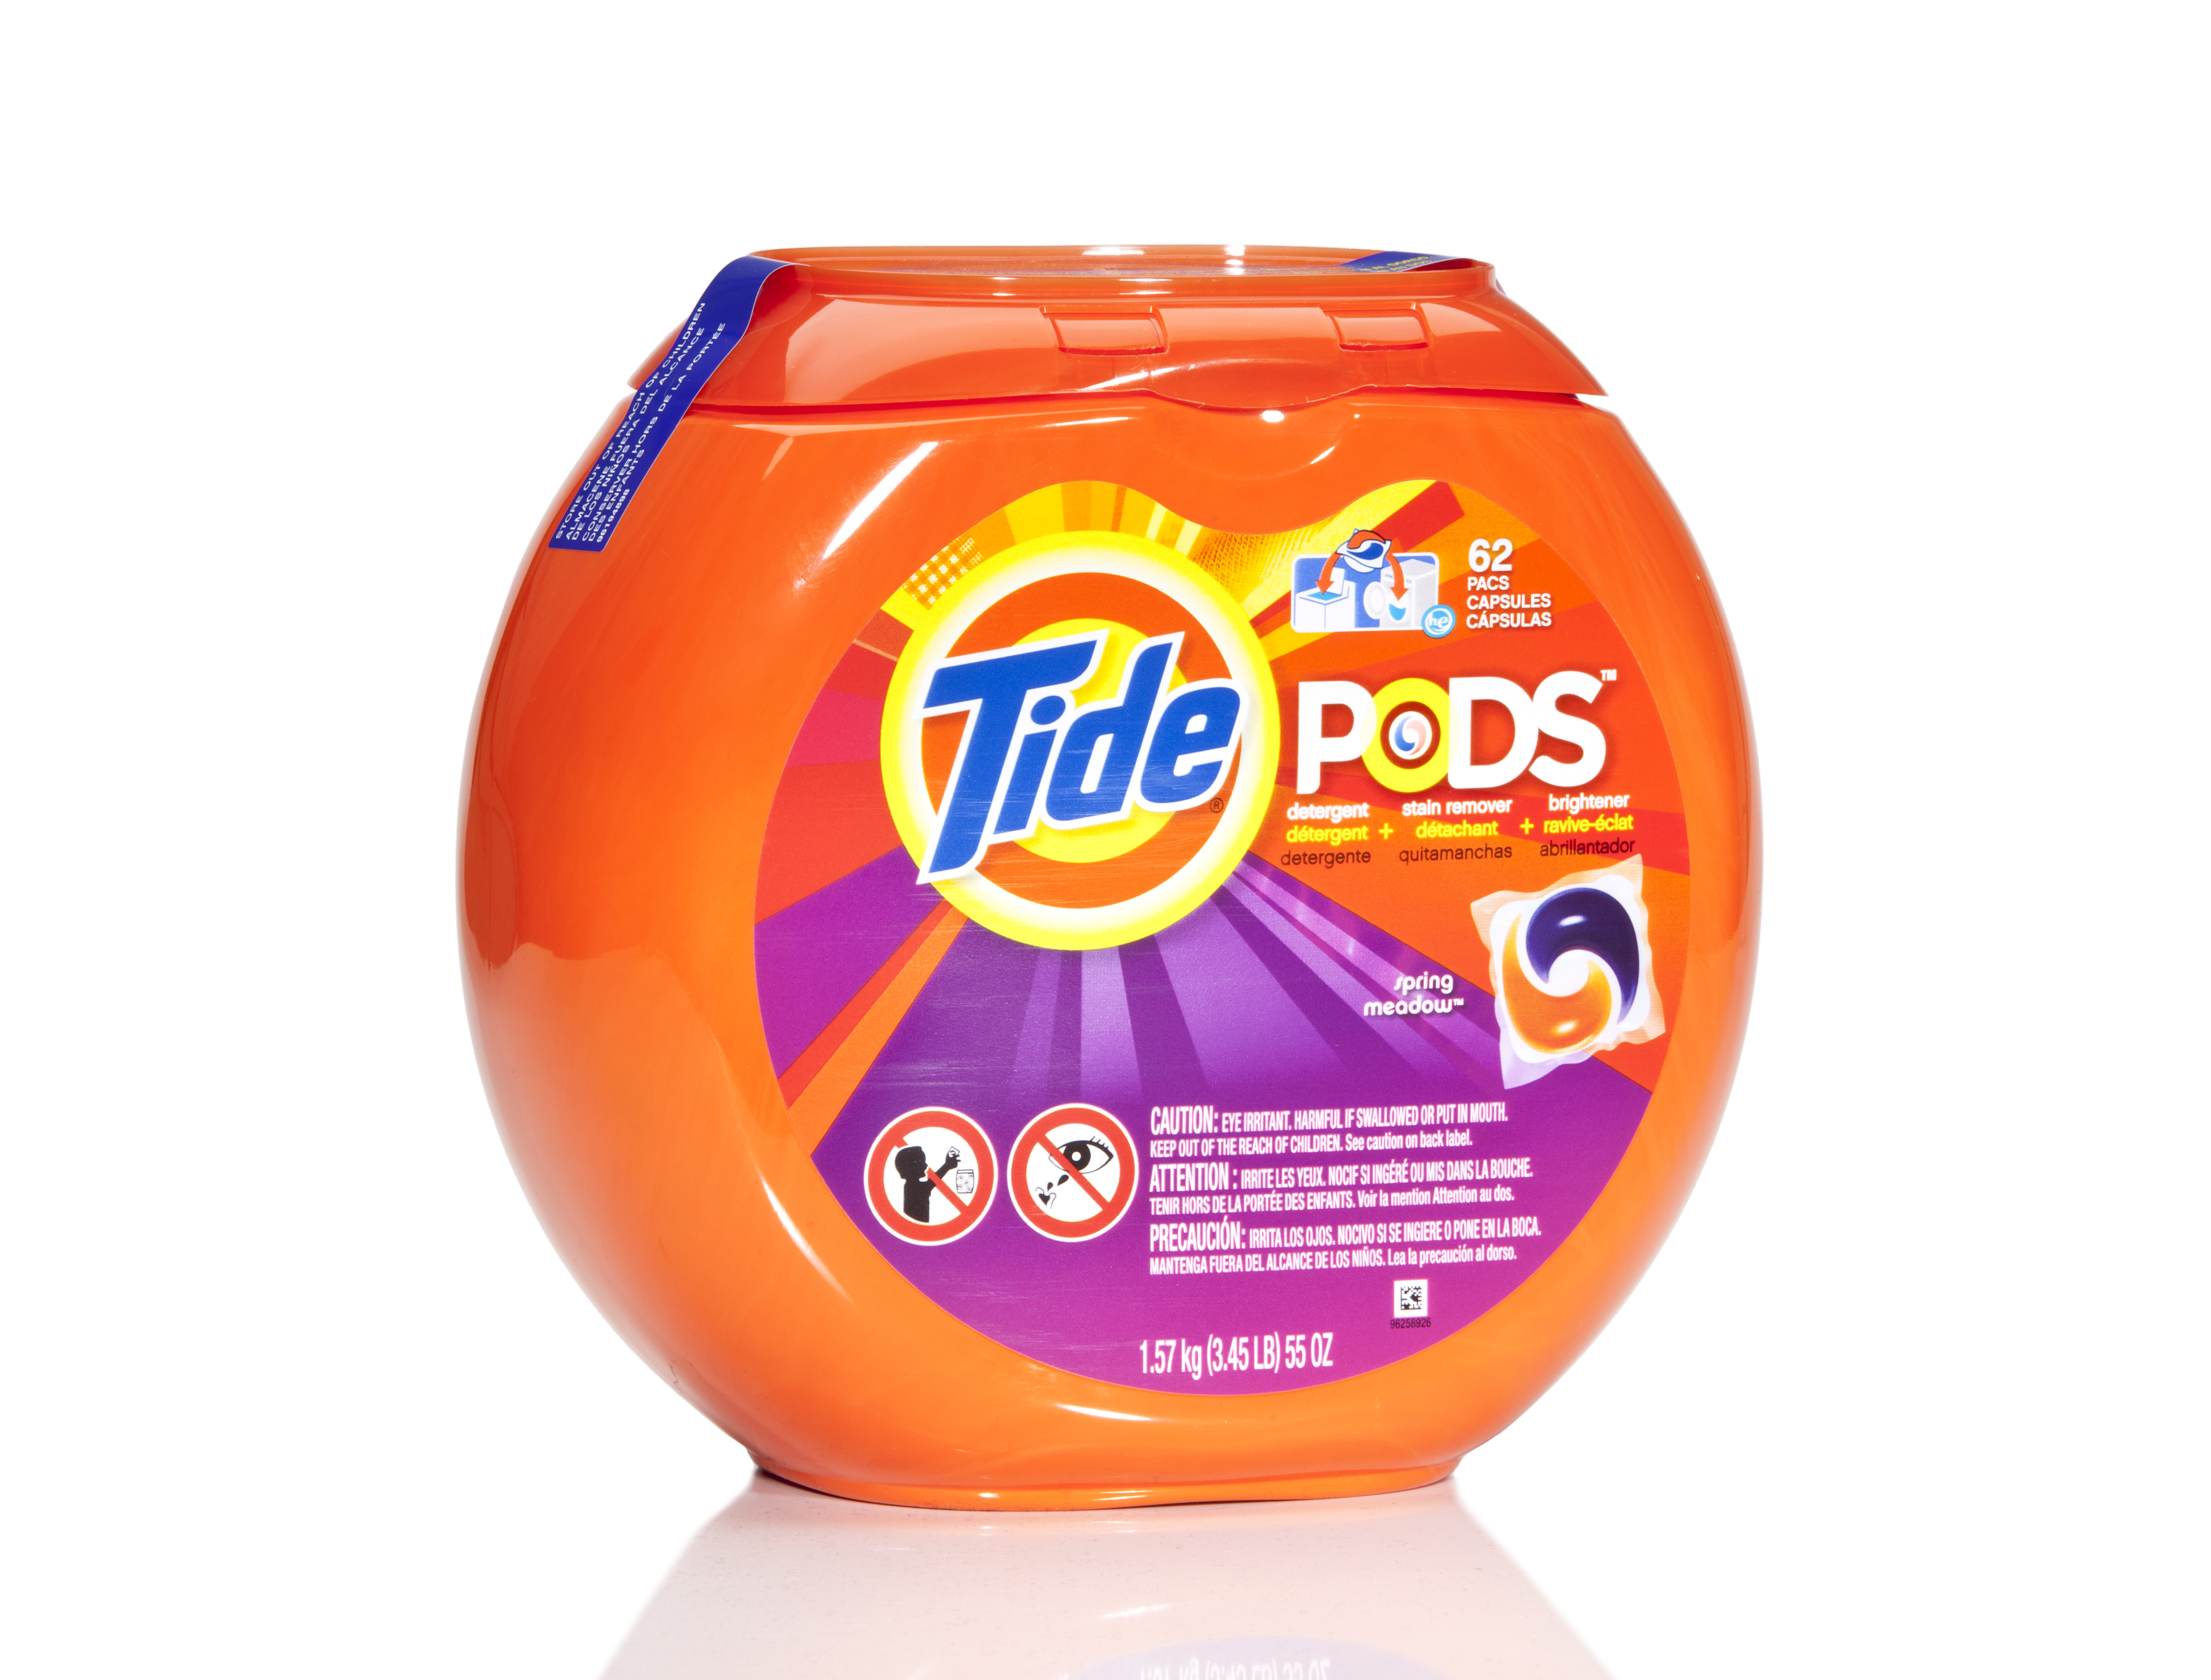 a corporative analysis for p g tide Boston consulting group matrix of procter & gamble's tide detergent the boston consulting group (bcg) matrix allows procter & gamble (p&g) to comprehend how consumers perceive tide detergent based on market growth and market share.